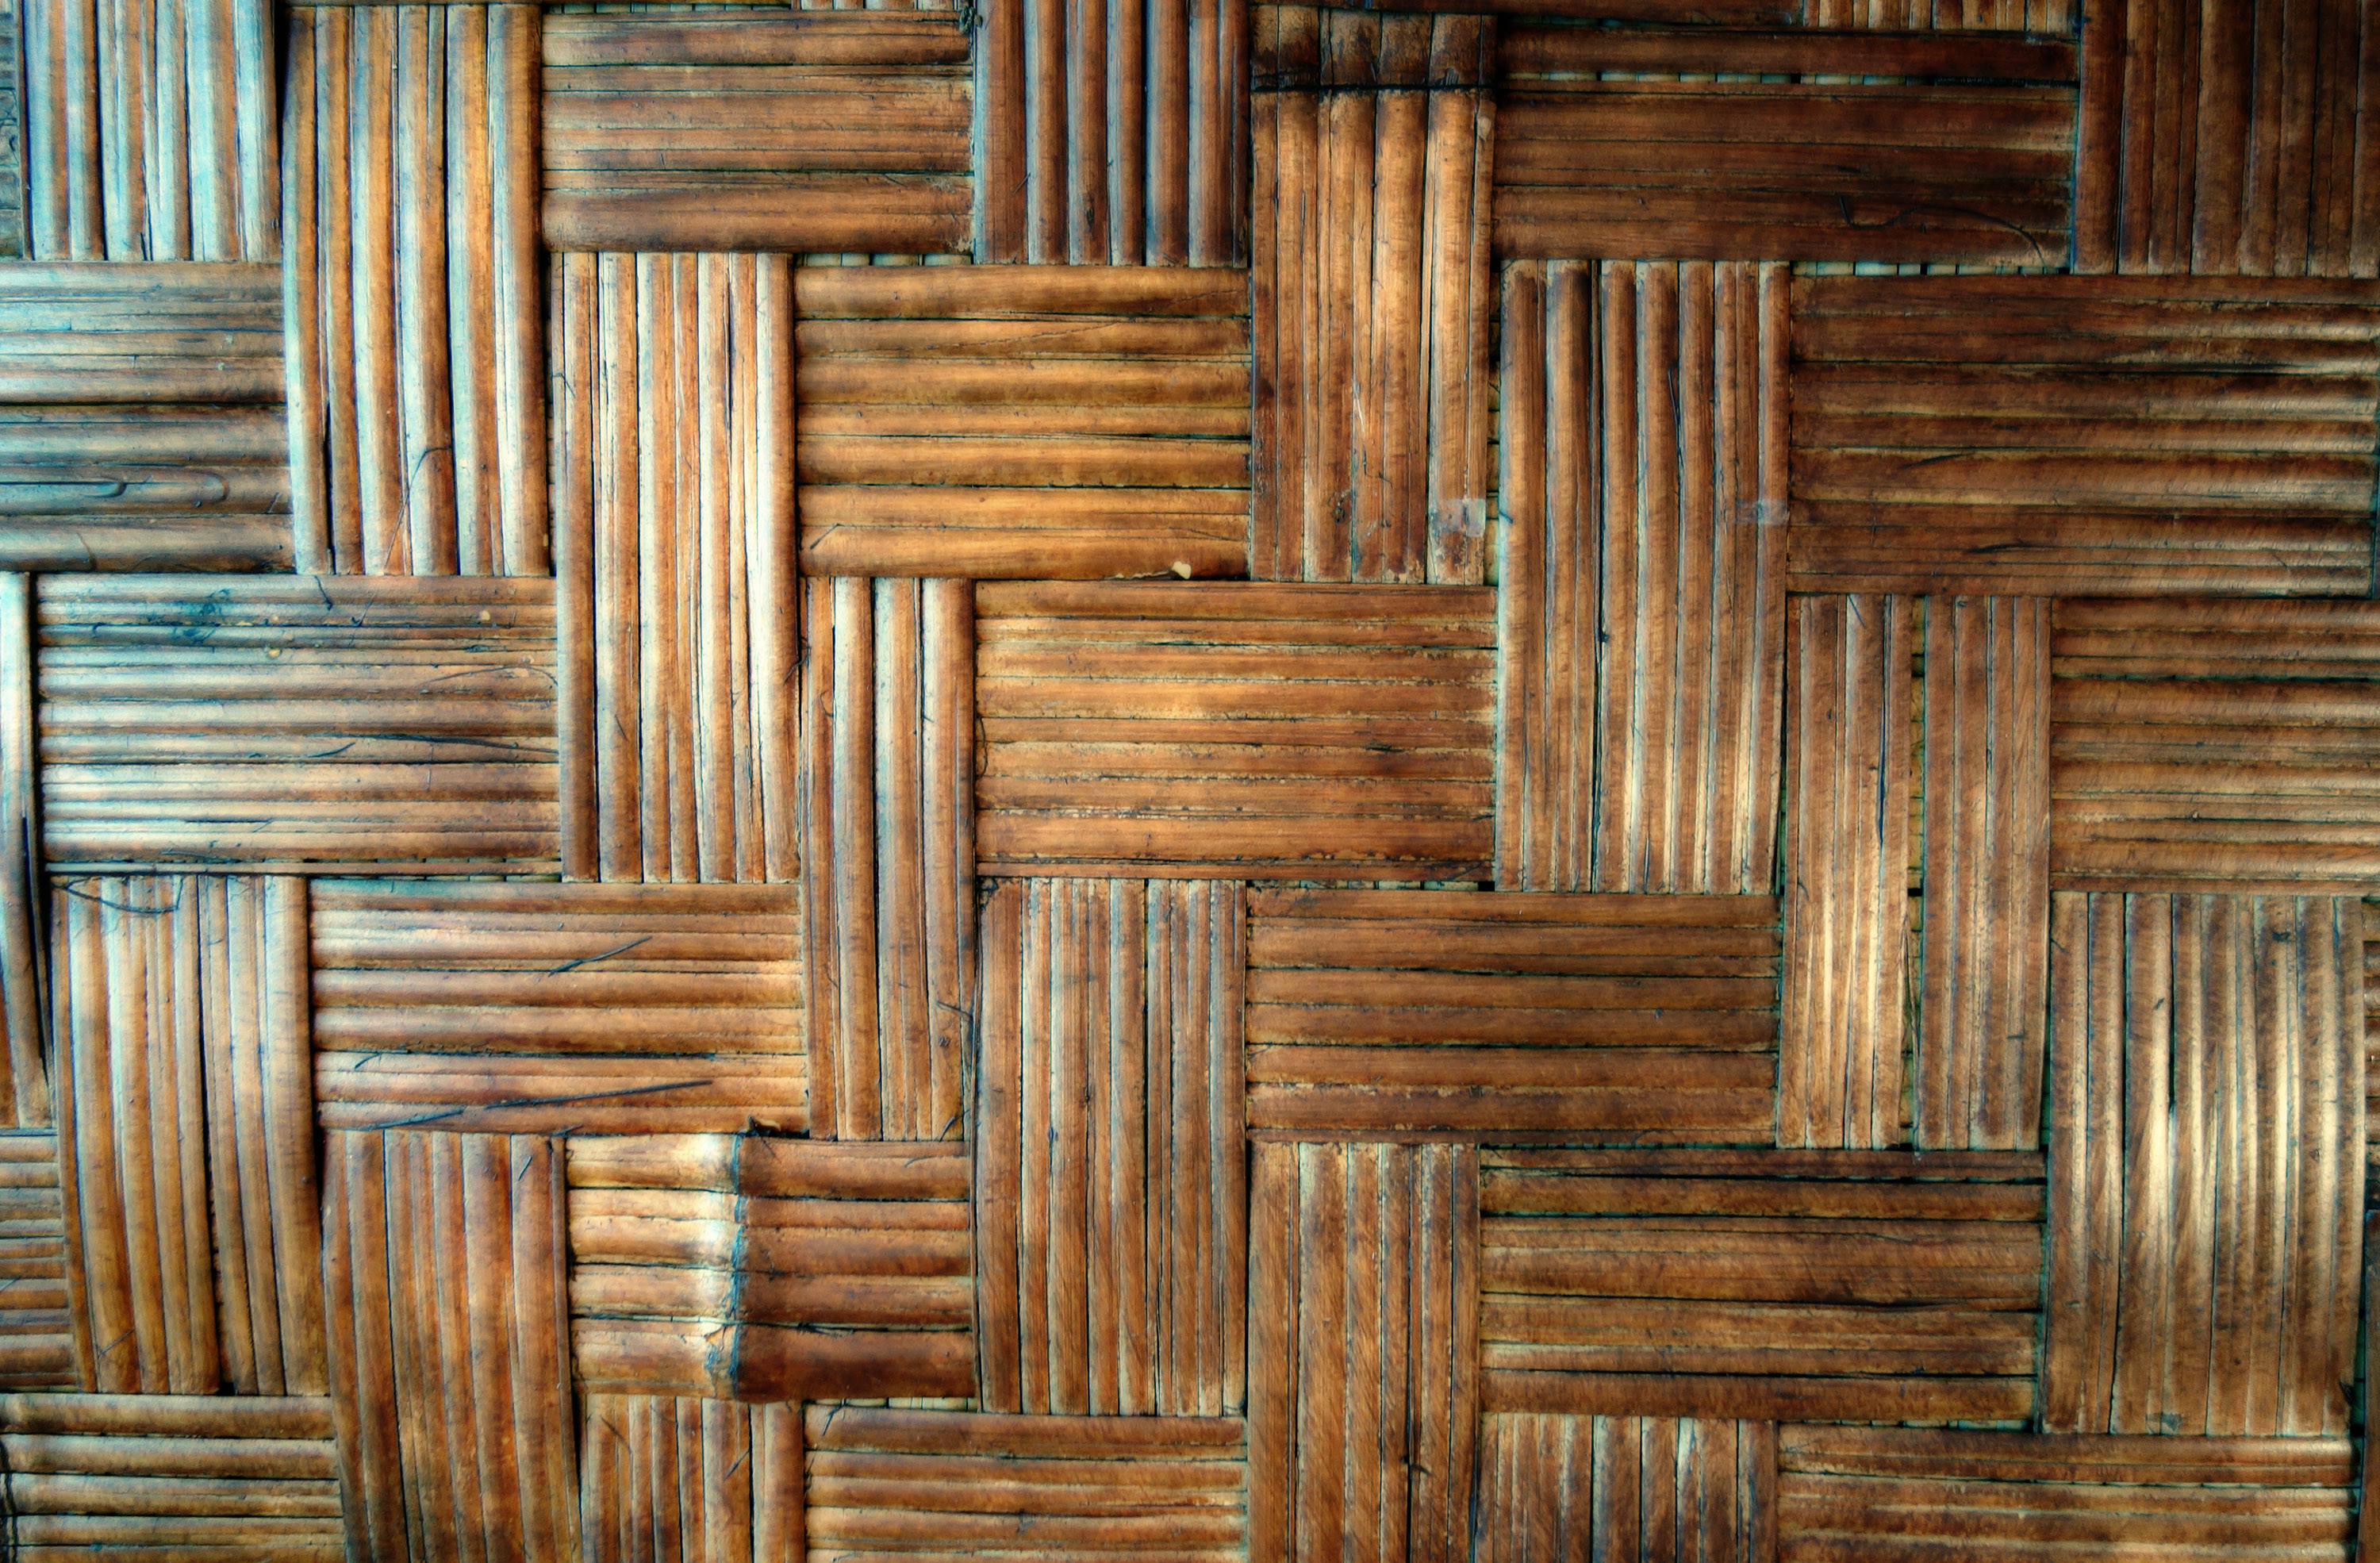 3000x1970 ... another woven bamboo wooden floor background image